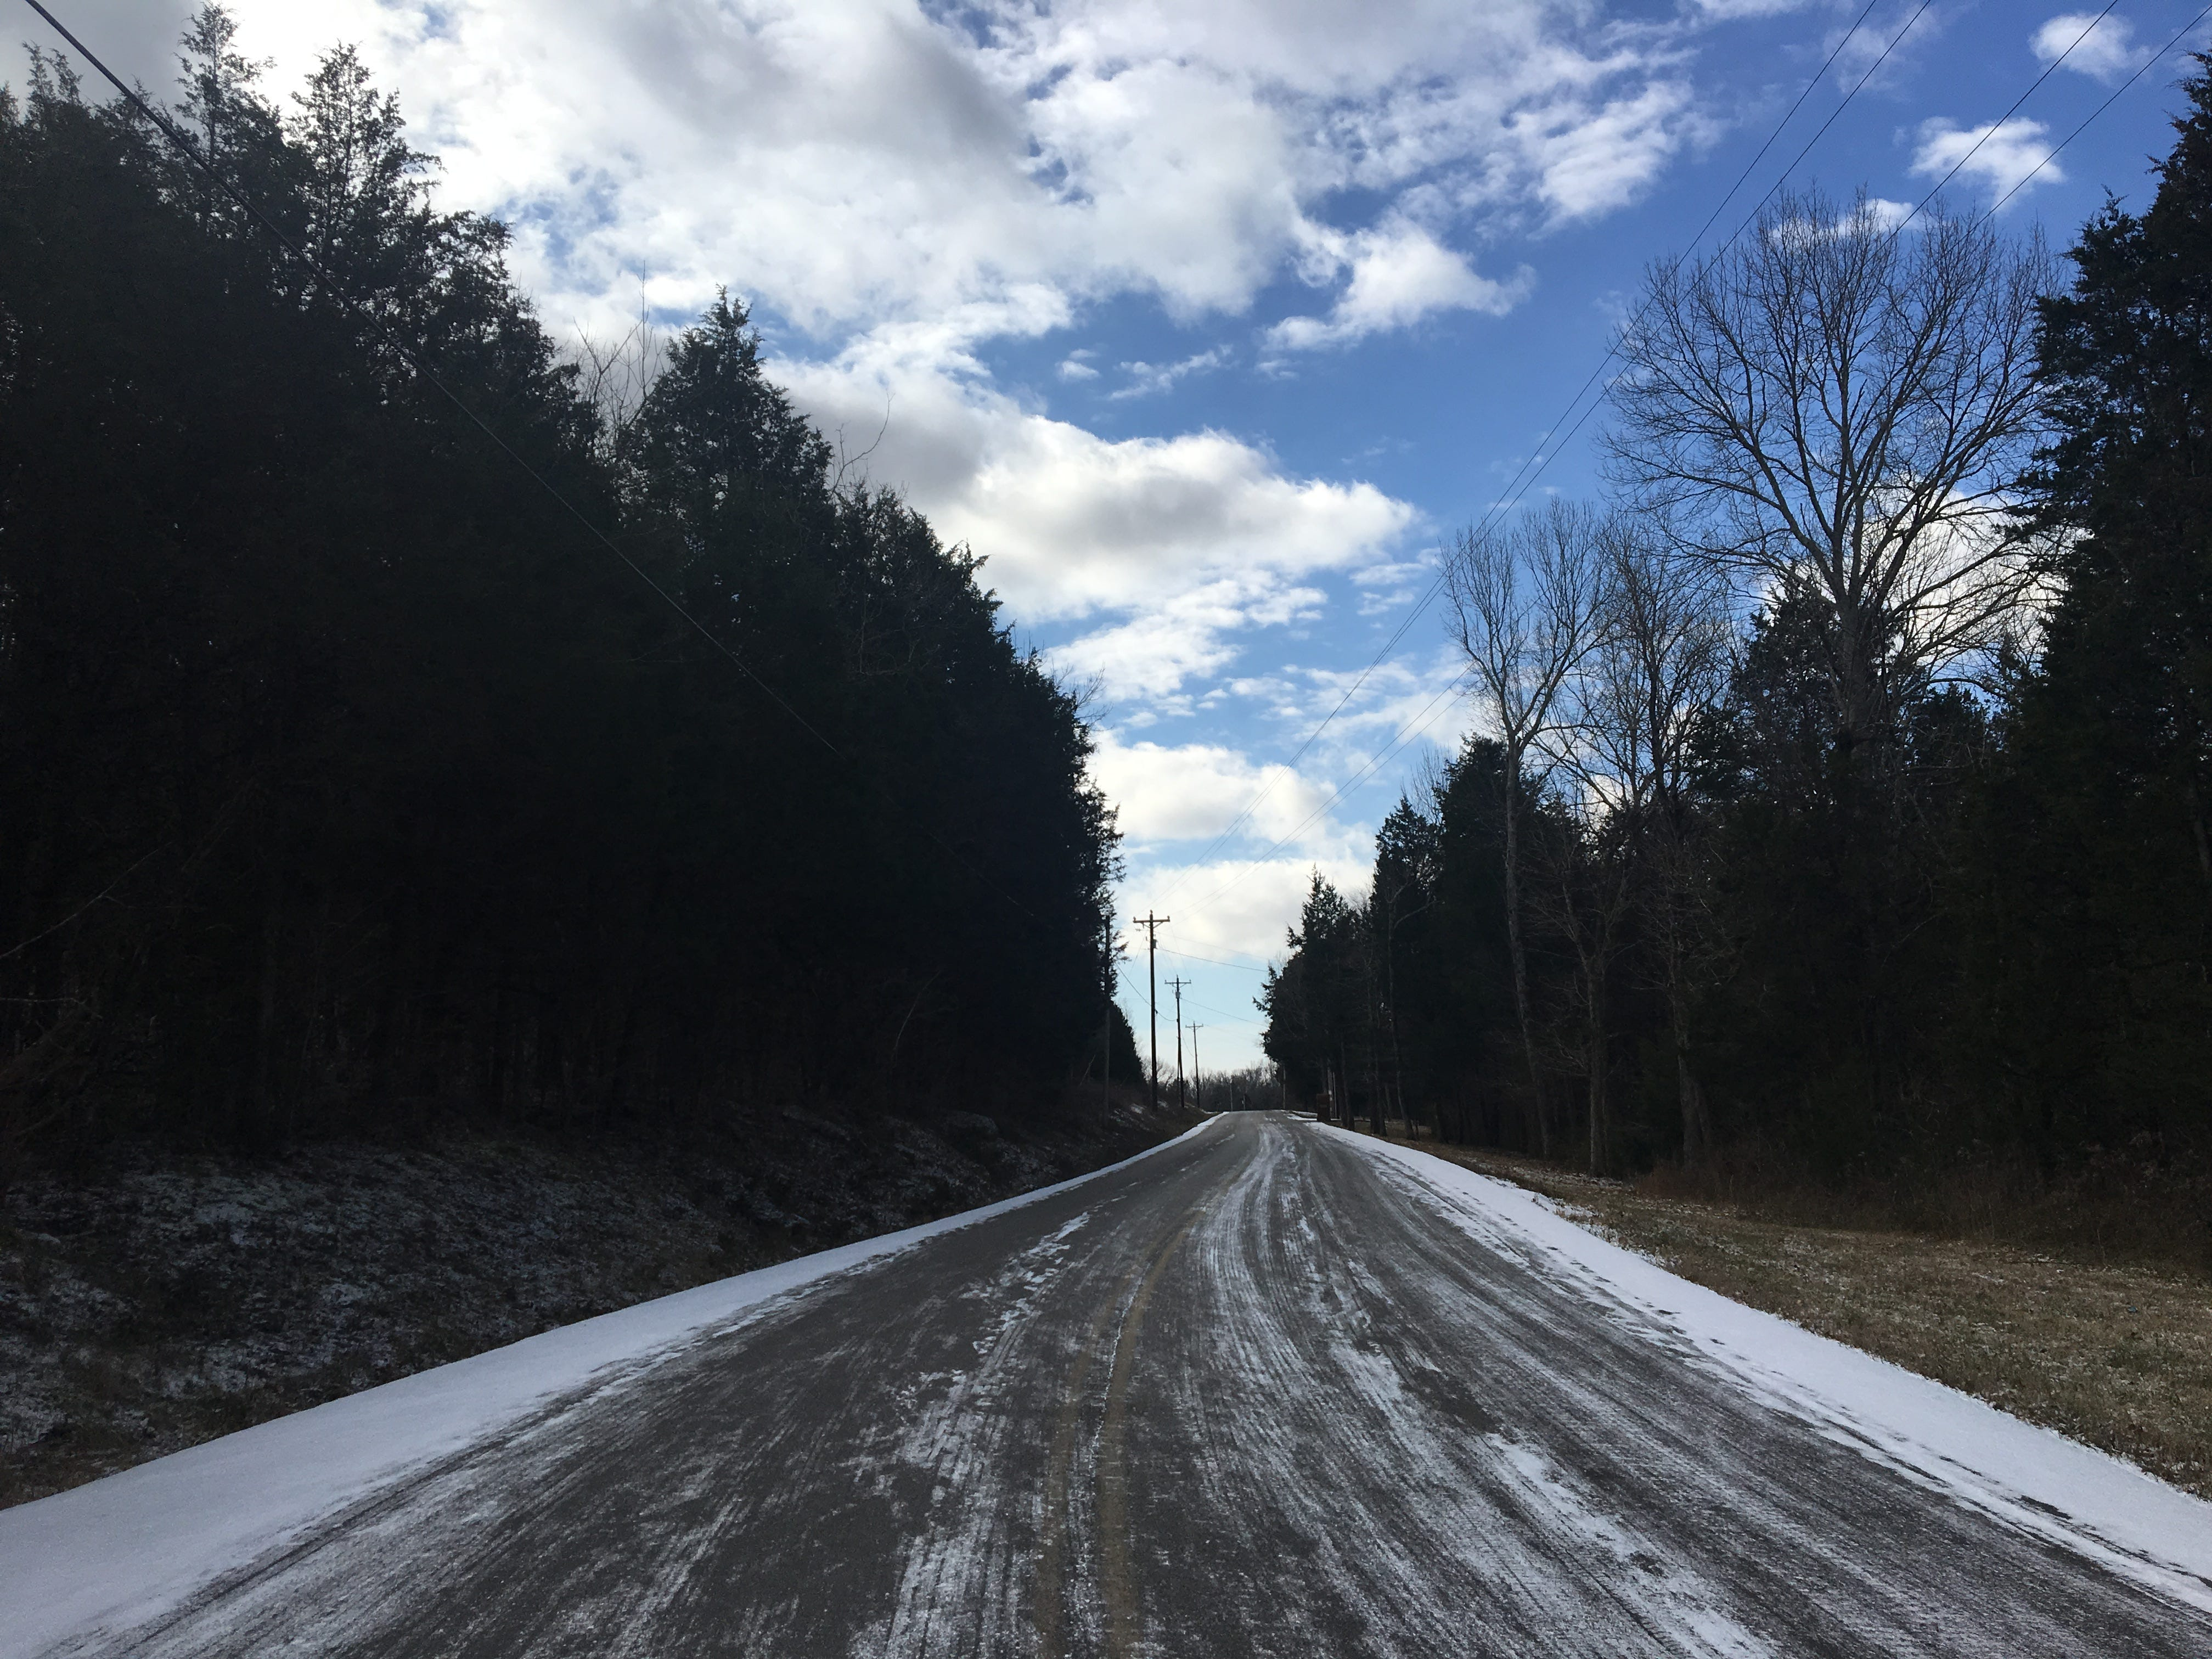 Del Thomas Road in Smyrna had little to no snow in some parts and was totally covered in others on Wednesday, Jan. 30, 2019.